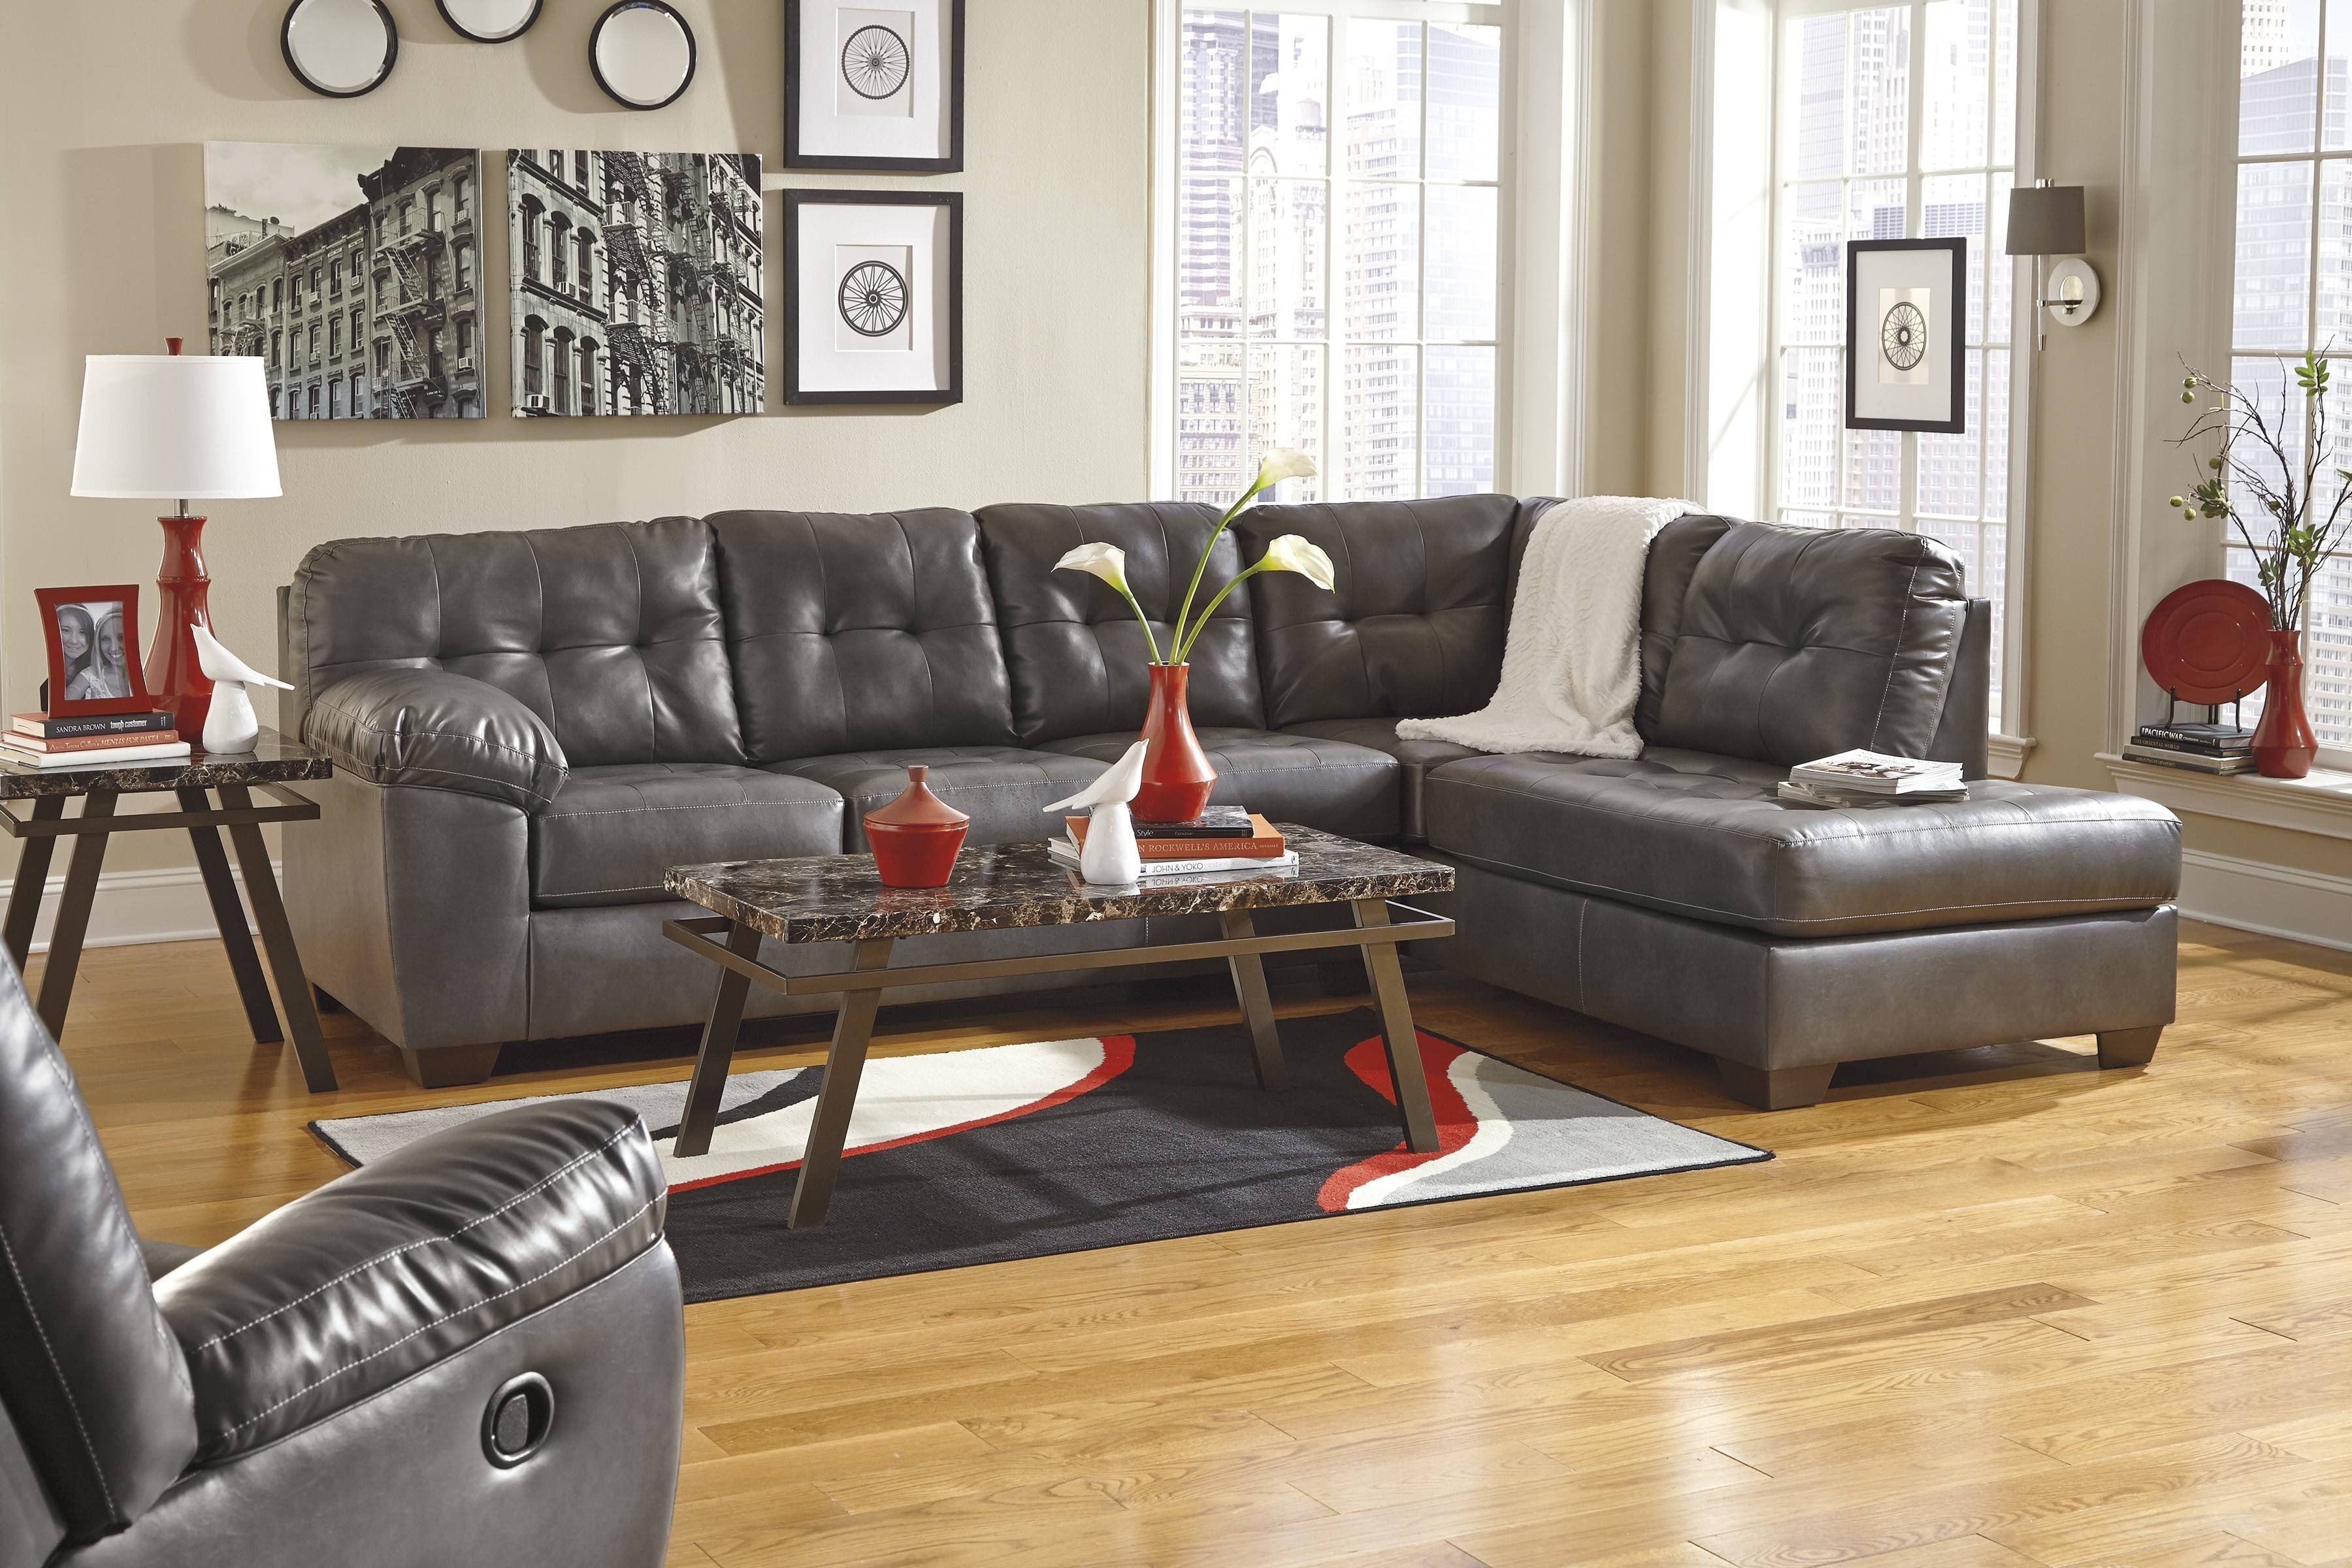 Furniture: Cindy Crawford Sectional Sofa For Elegant Living Room throughout Cindy Crawford Leather Sectional Sofas (Image 5 of 15)